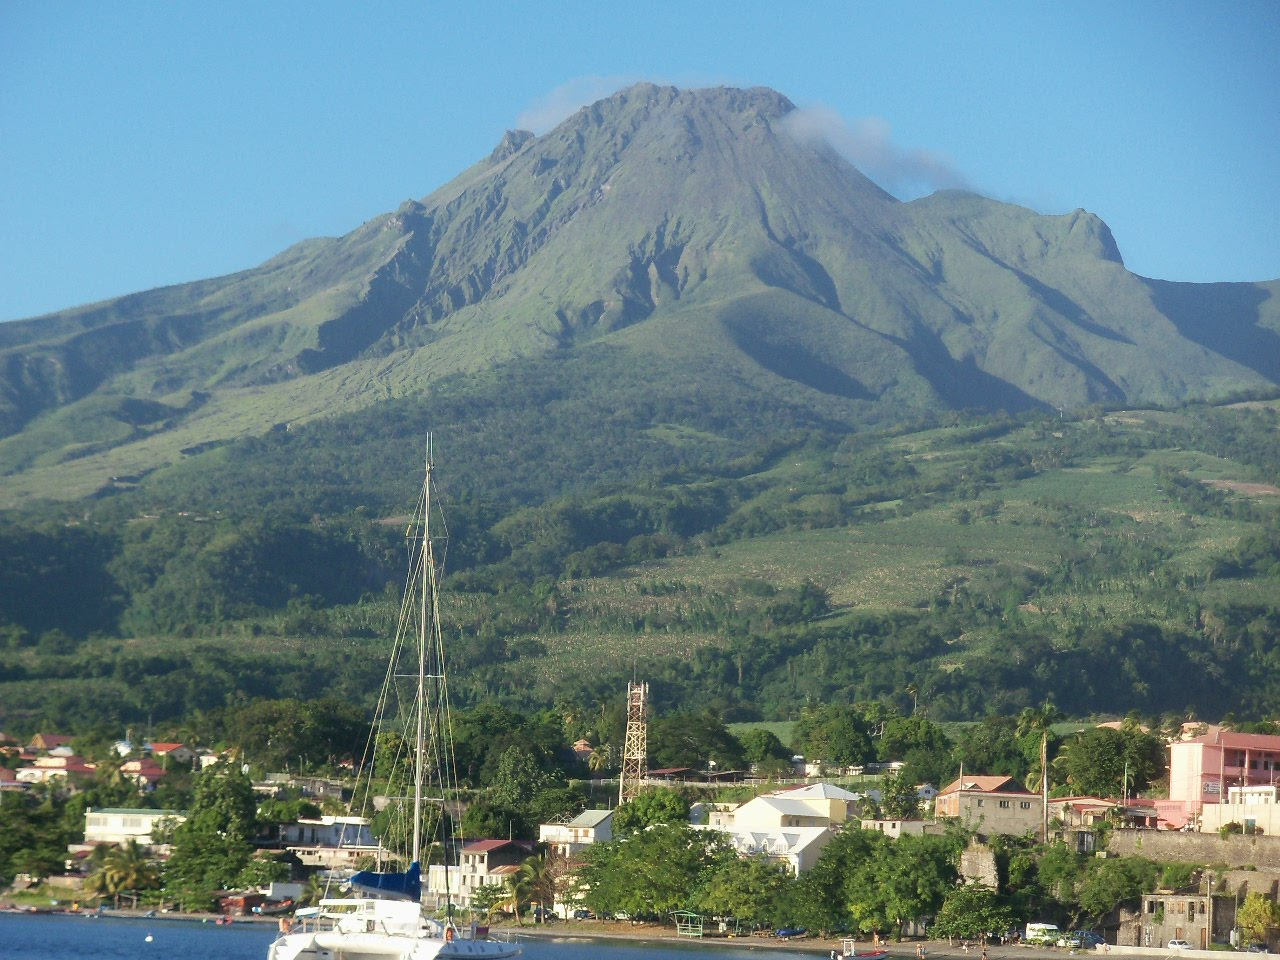 mount pelee Montagne pelée martinique, west indies 1482 n, 6117 w summit elevation  1397 m stratovolcano the 1902 eruption of mt pelée, destroyed the city of st.